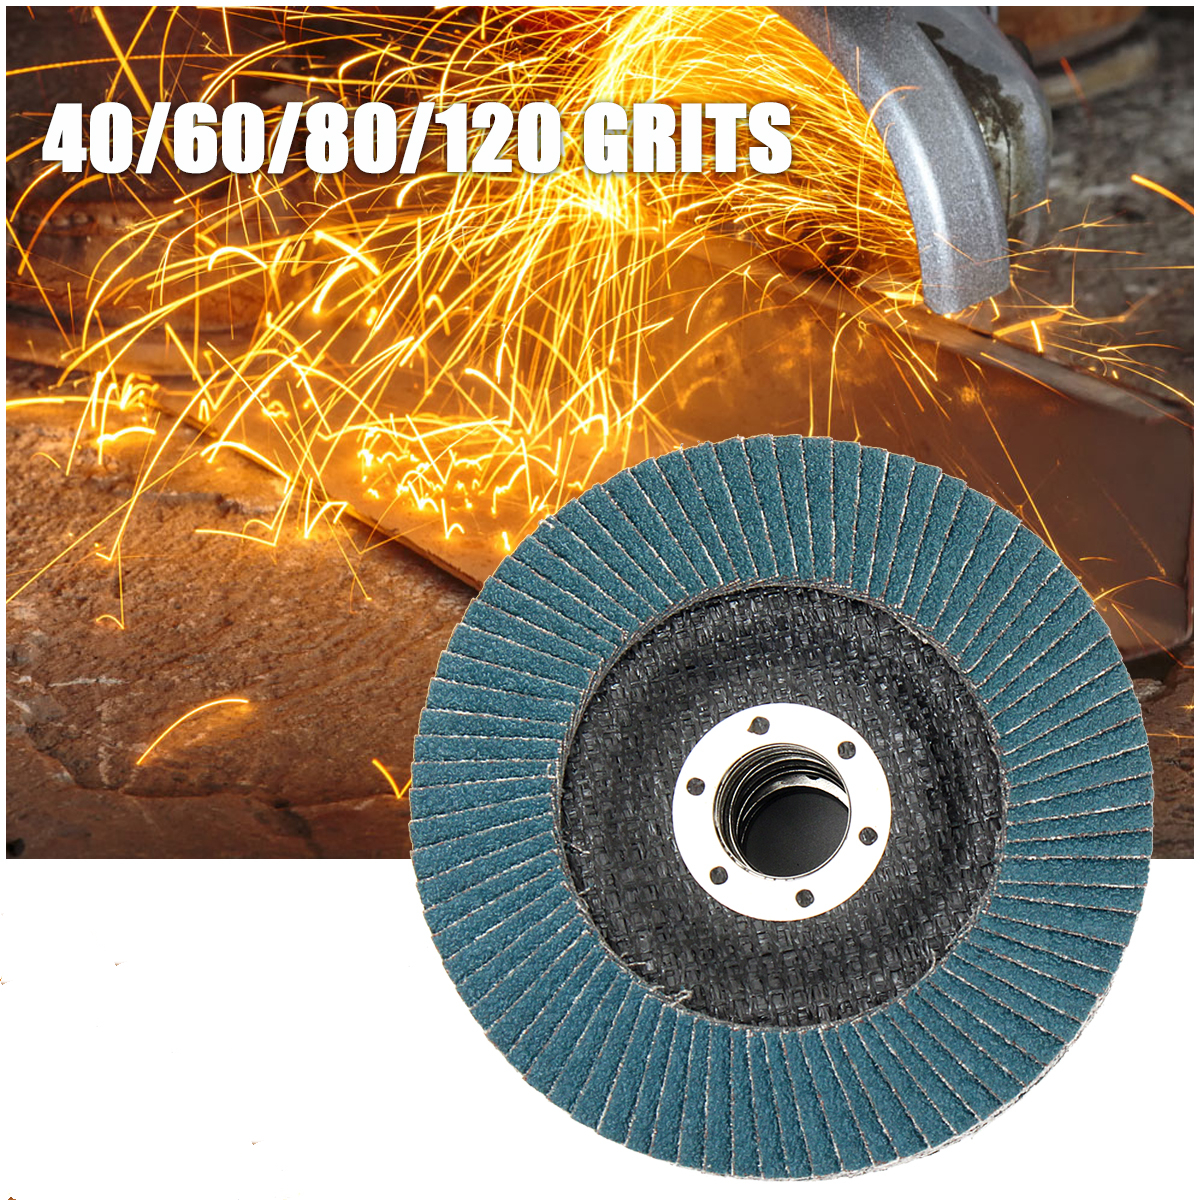 Flap Sanding Disc 115mm 40/60/80/120 Grits Round Sandpaper Sanding Paper Discs 4.5 Inches Grinding Wheels Flap Discs